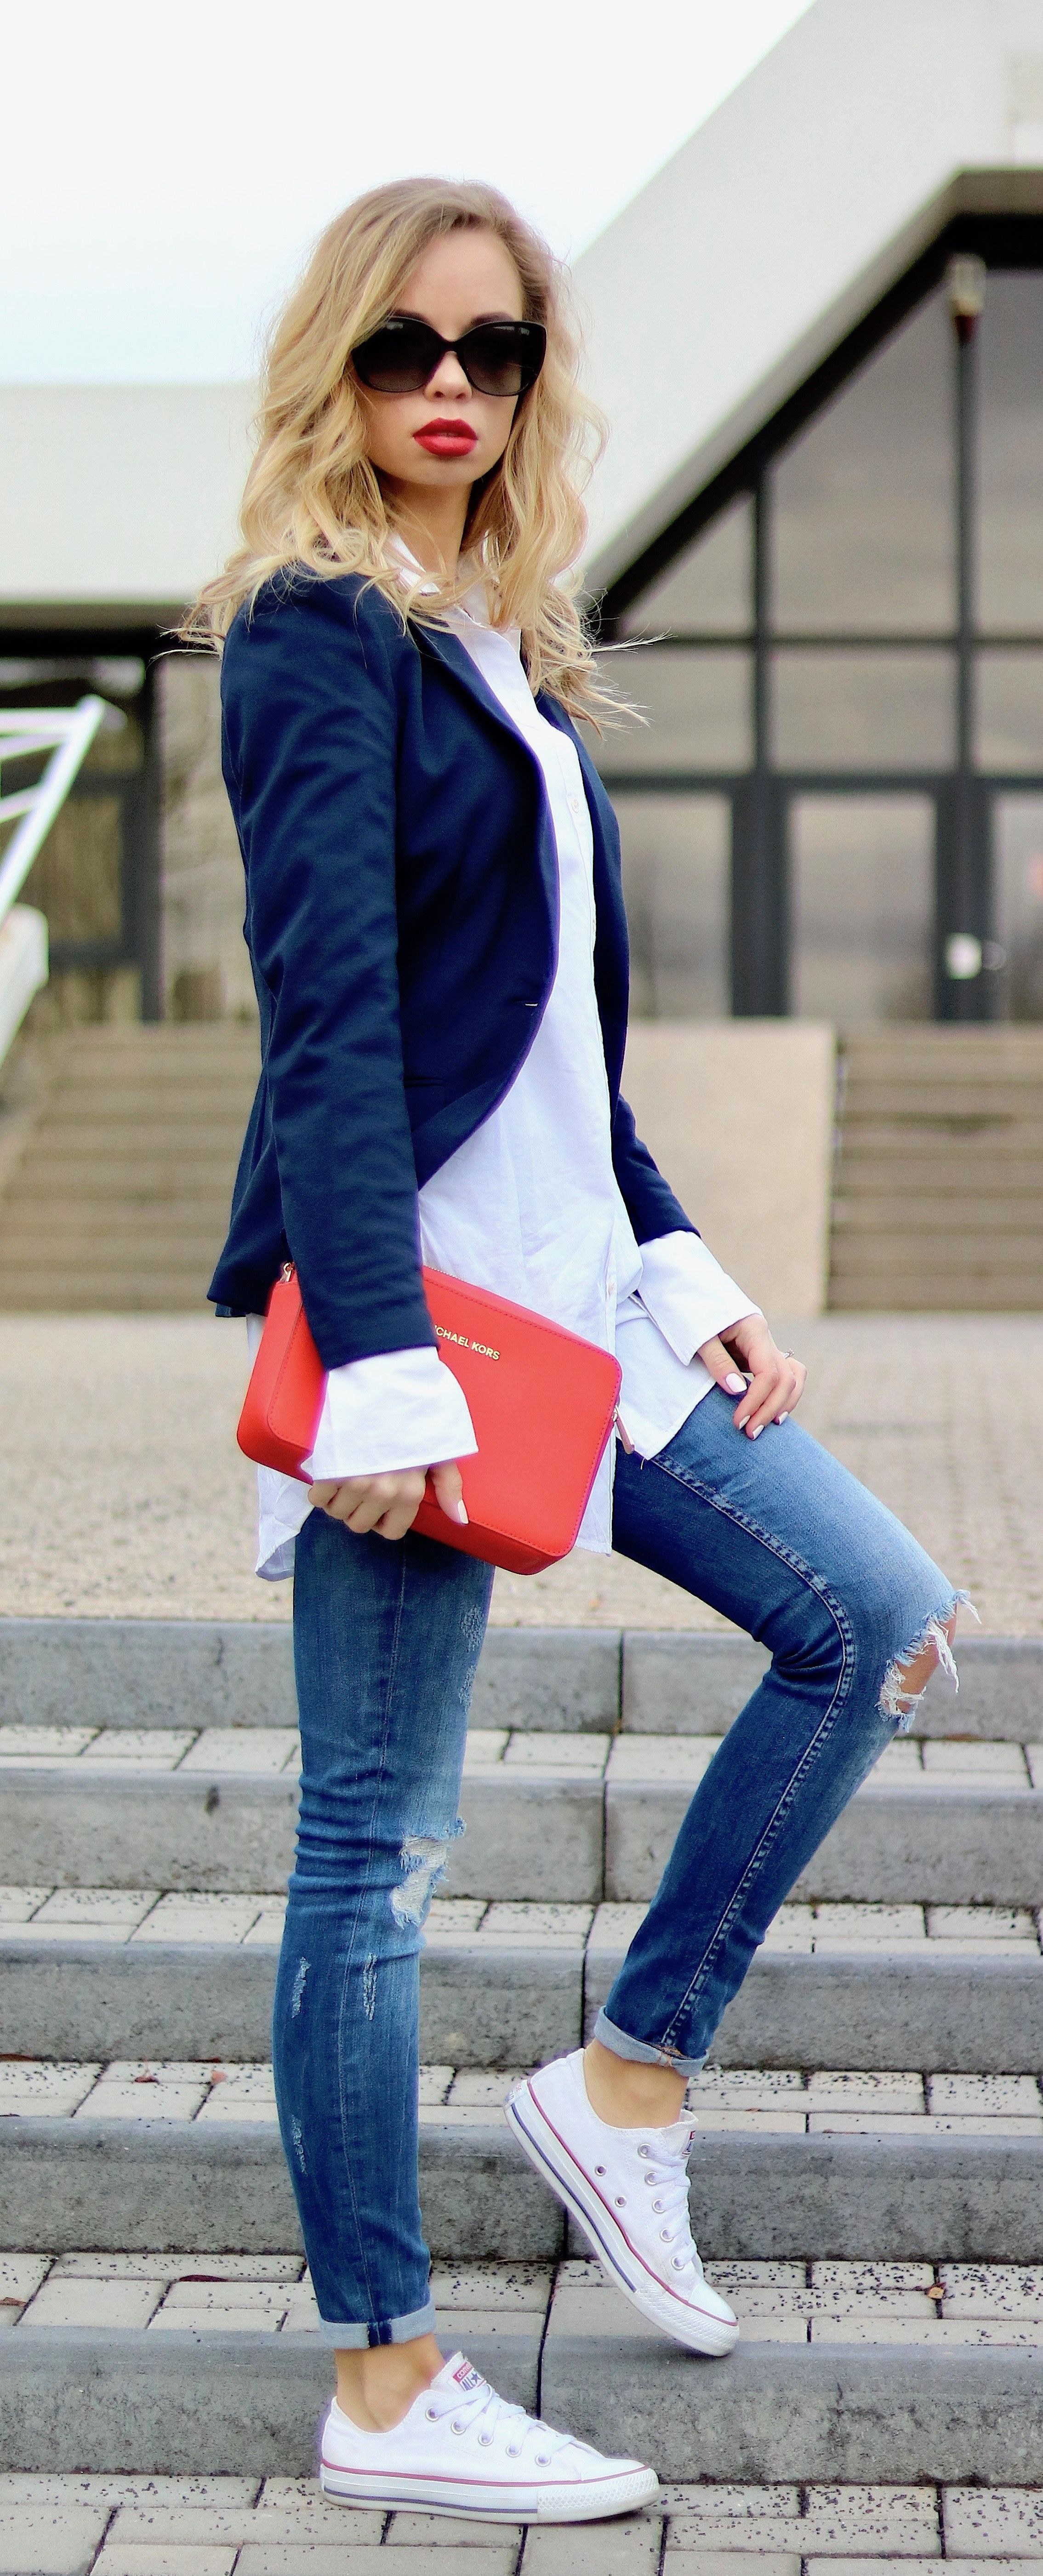 Outfit,Style,Fashion,Streetstyle,Casual,Casual Chic,Blazer,Red Lips,Look, Outfit of the day,ootd,Clutch,Red,Blue,Jeans